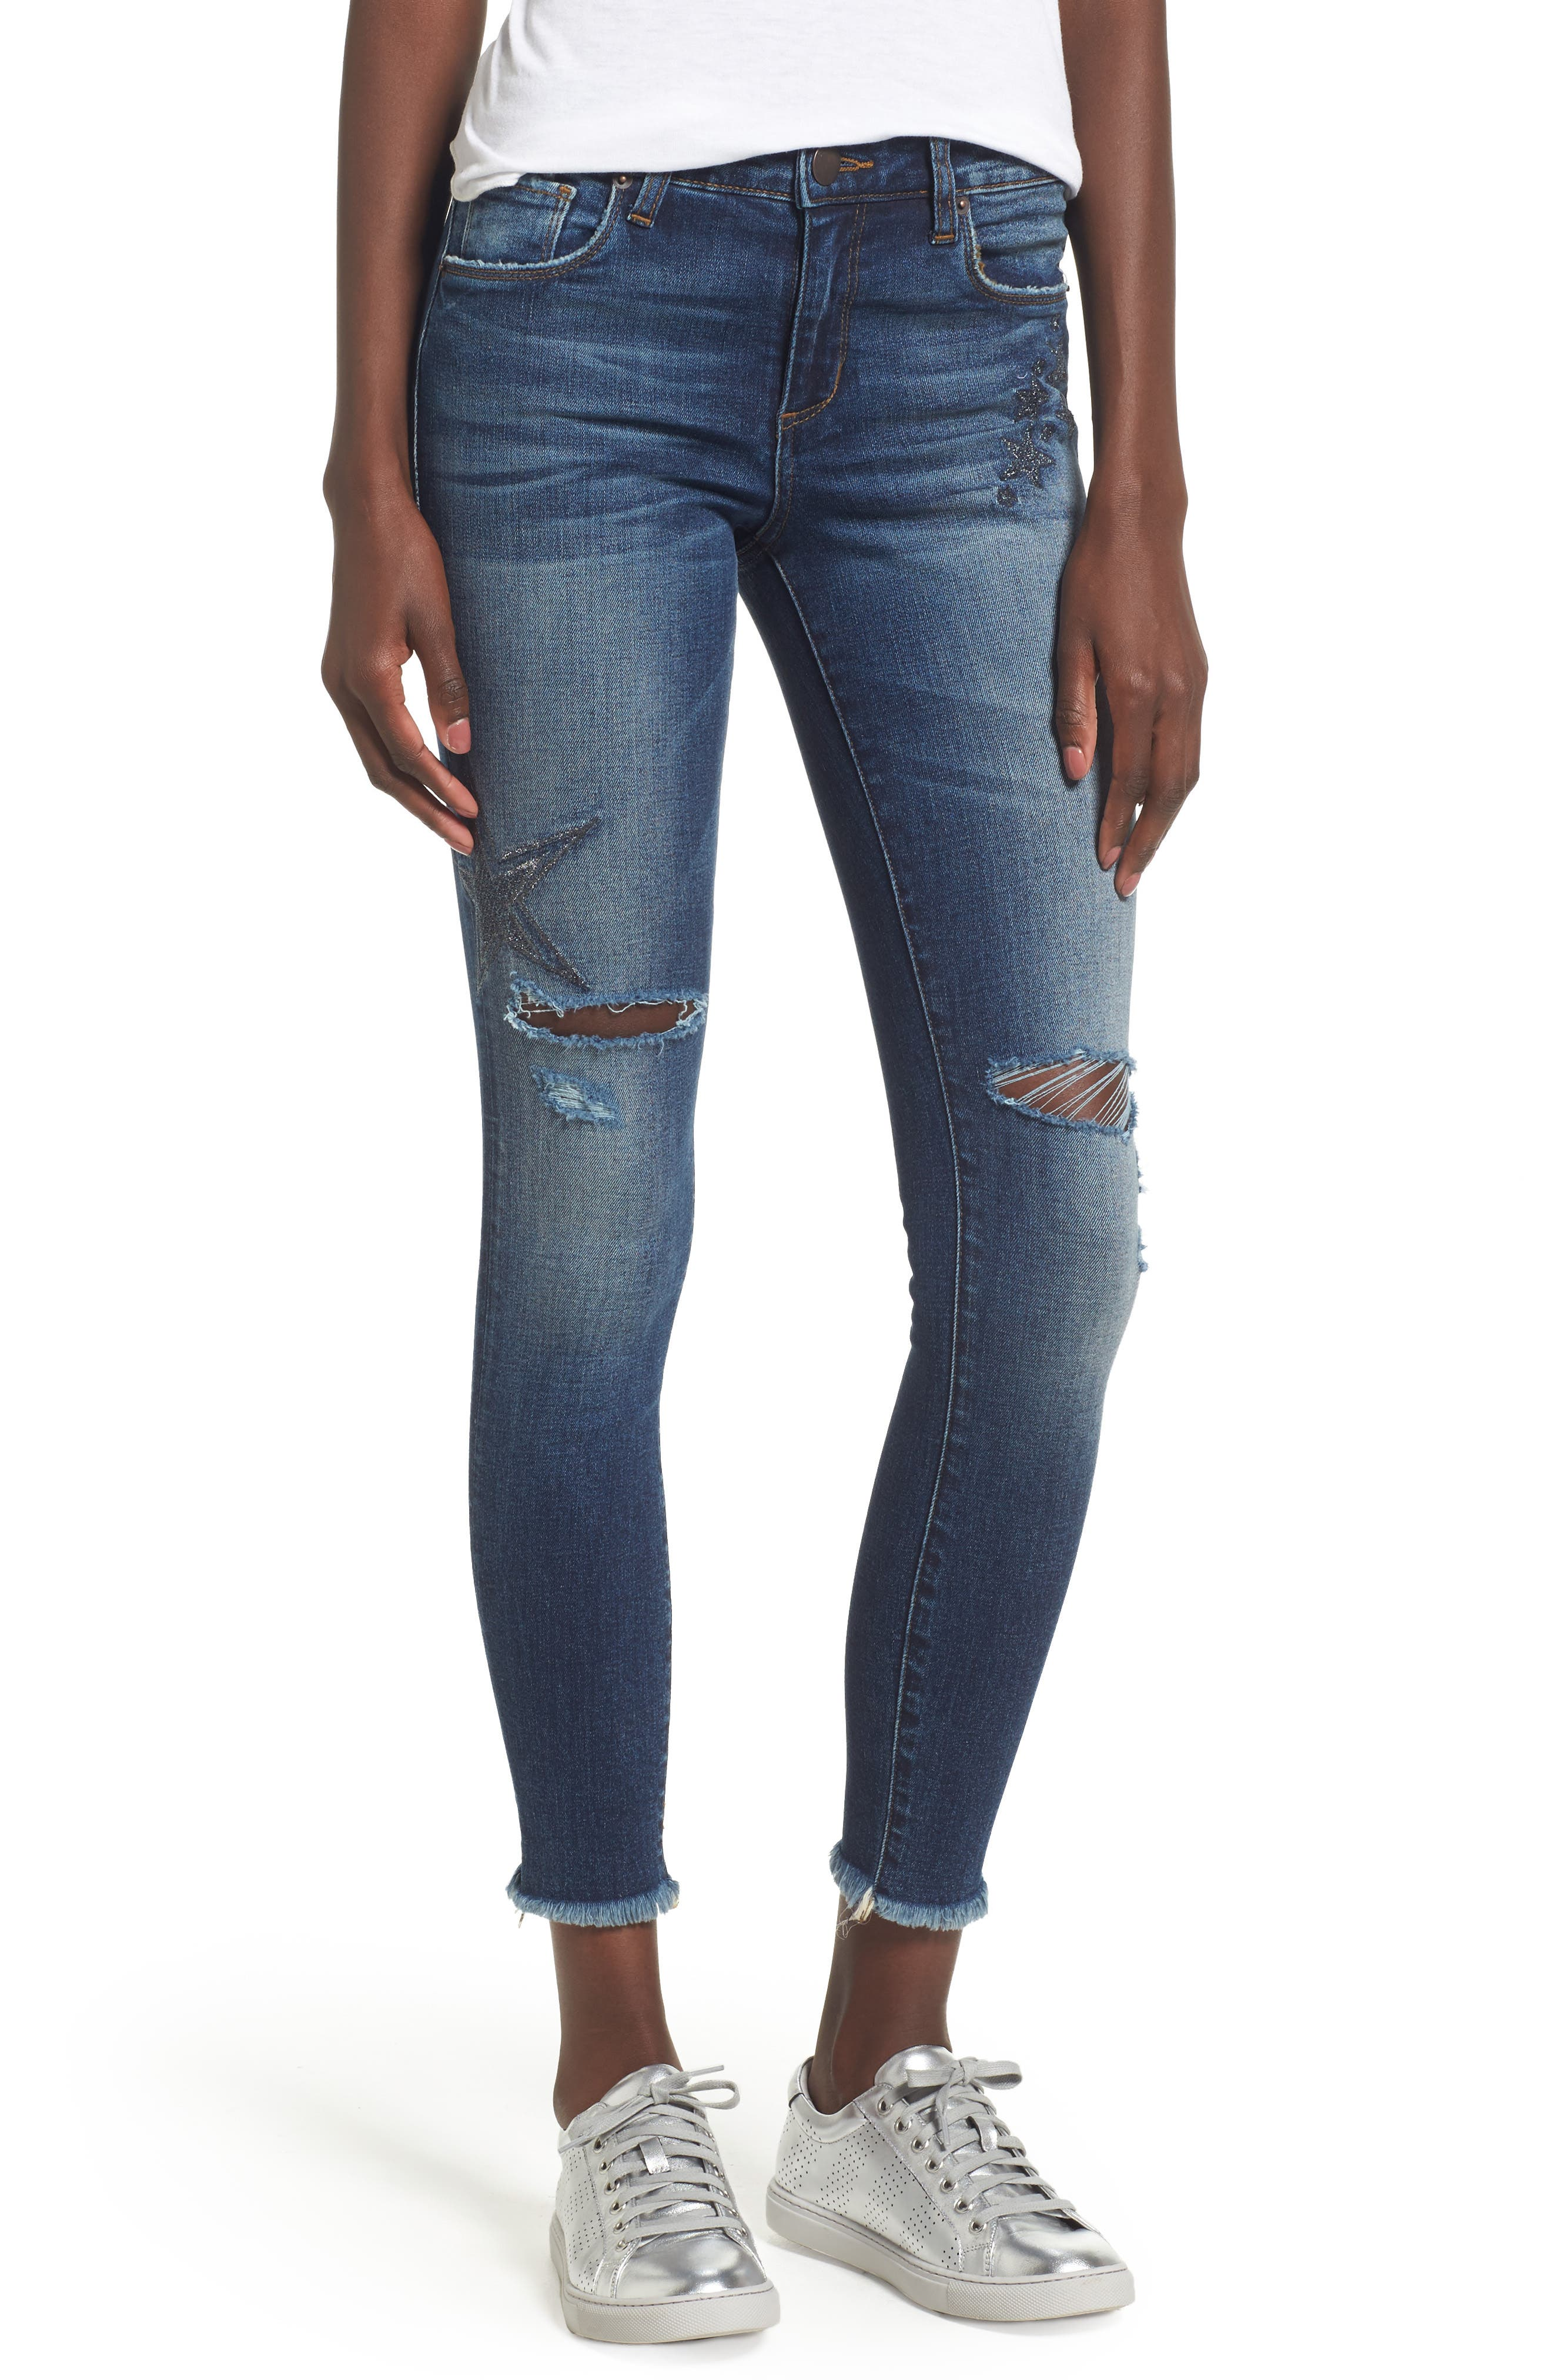 Alternate Image 1 Selected - STS Blue Star Embroiderd Skinny Ankle Jeans